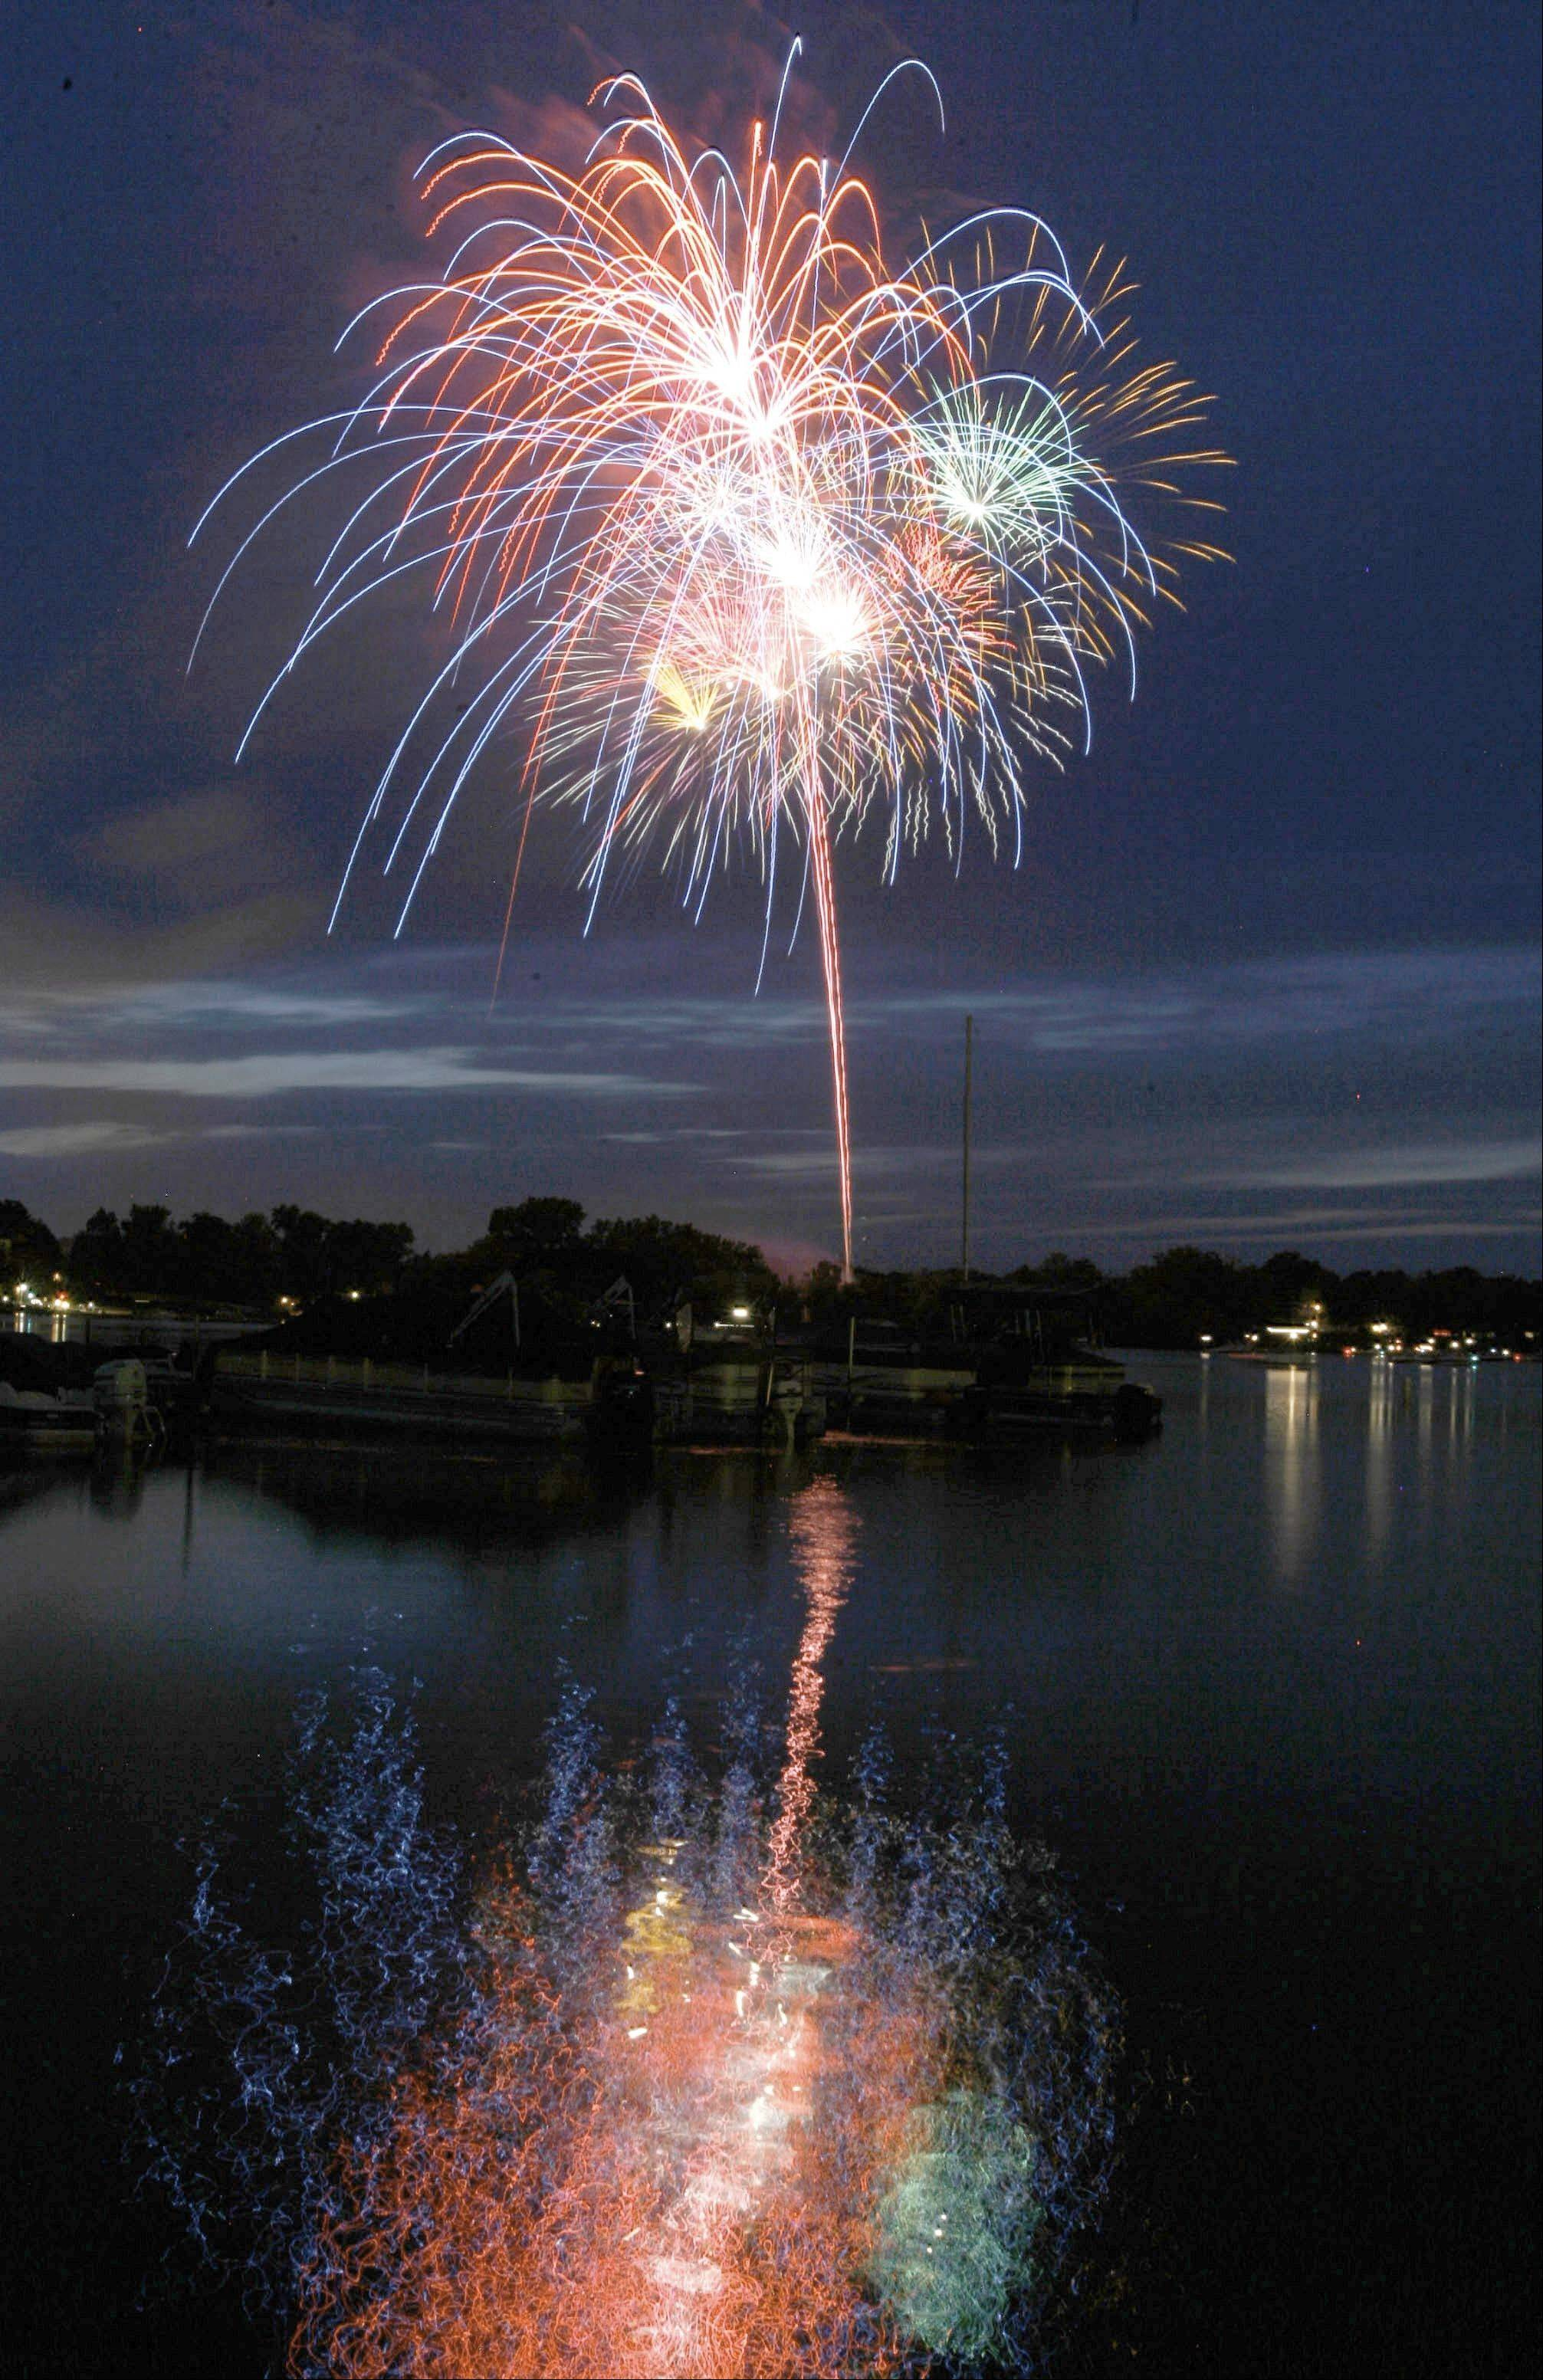 The village of Wauconda hosts its annual fireworks display on Tuesday, July 3, in Cook Park.